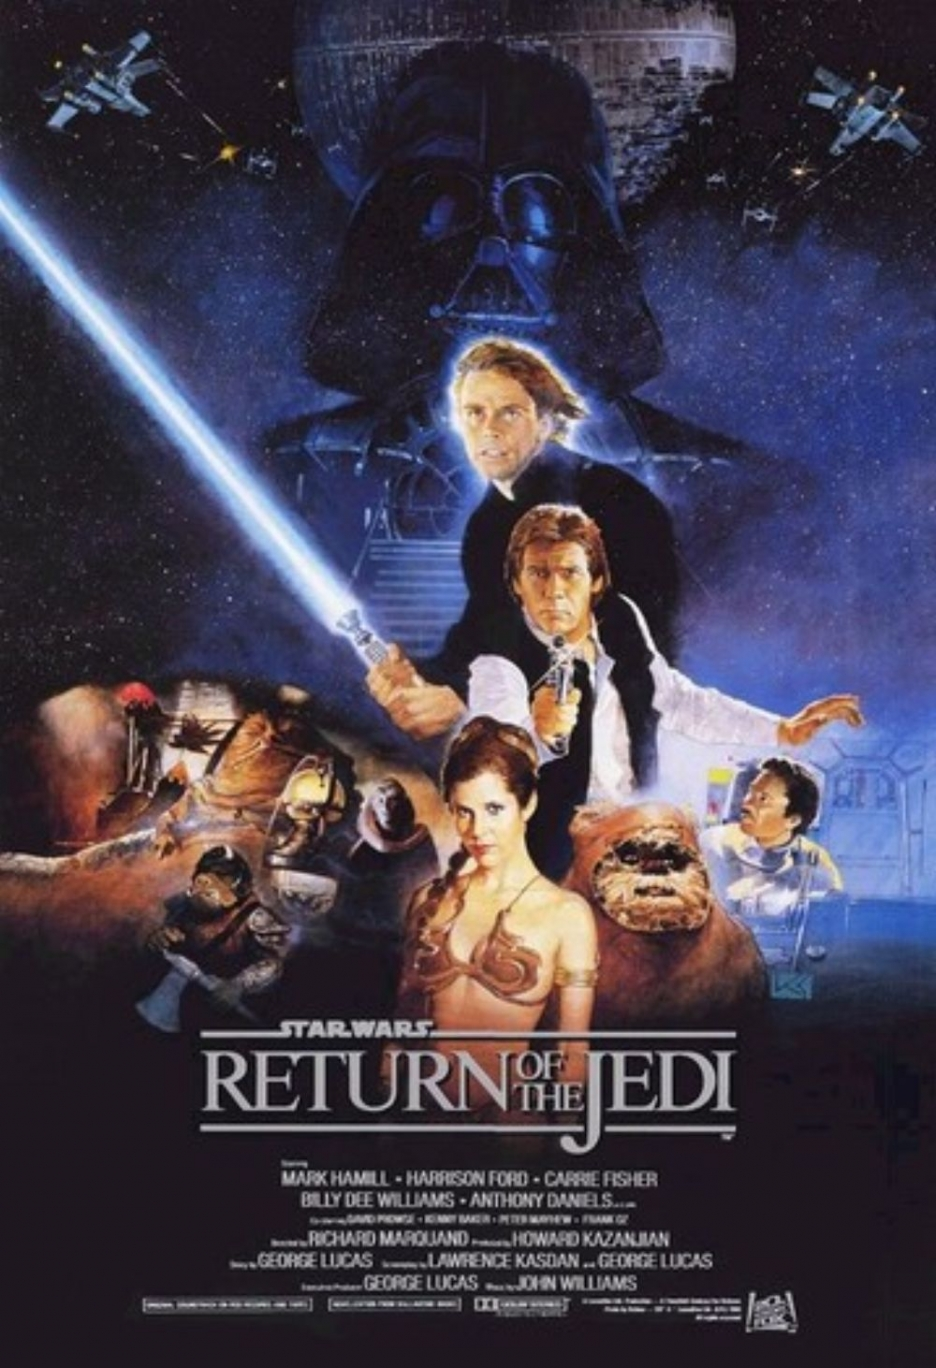 Star Wars Episode 6 Return Of The Jedi 1983 Review The Cinema Critic